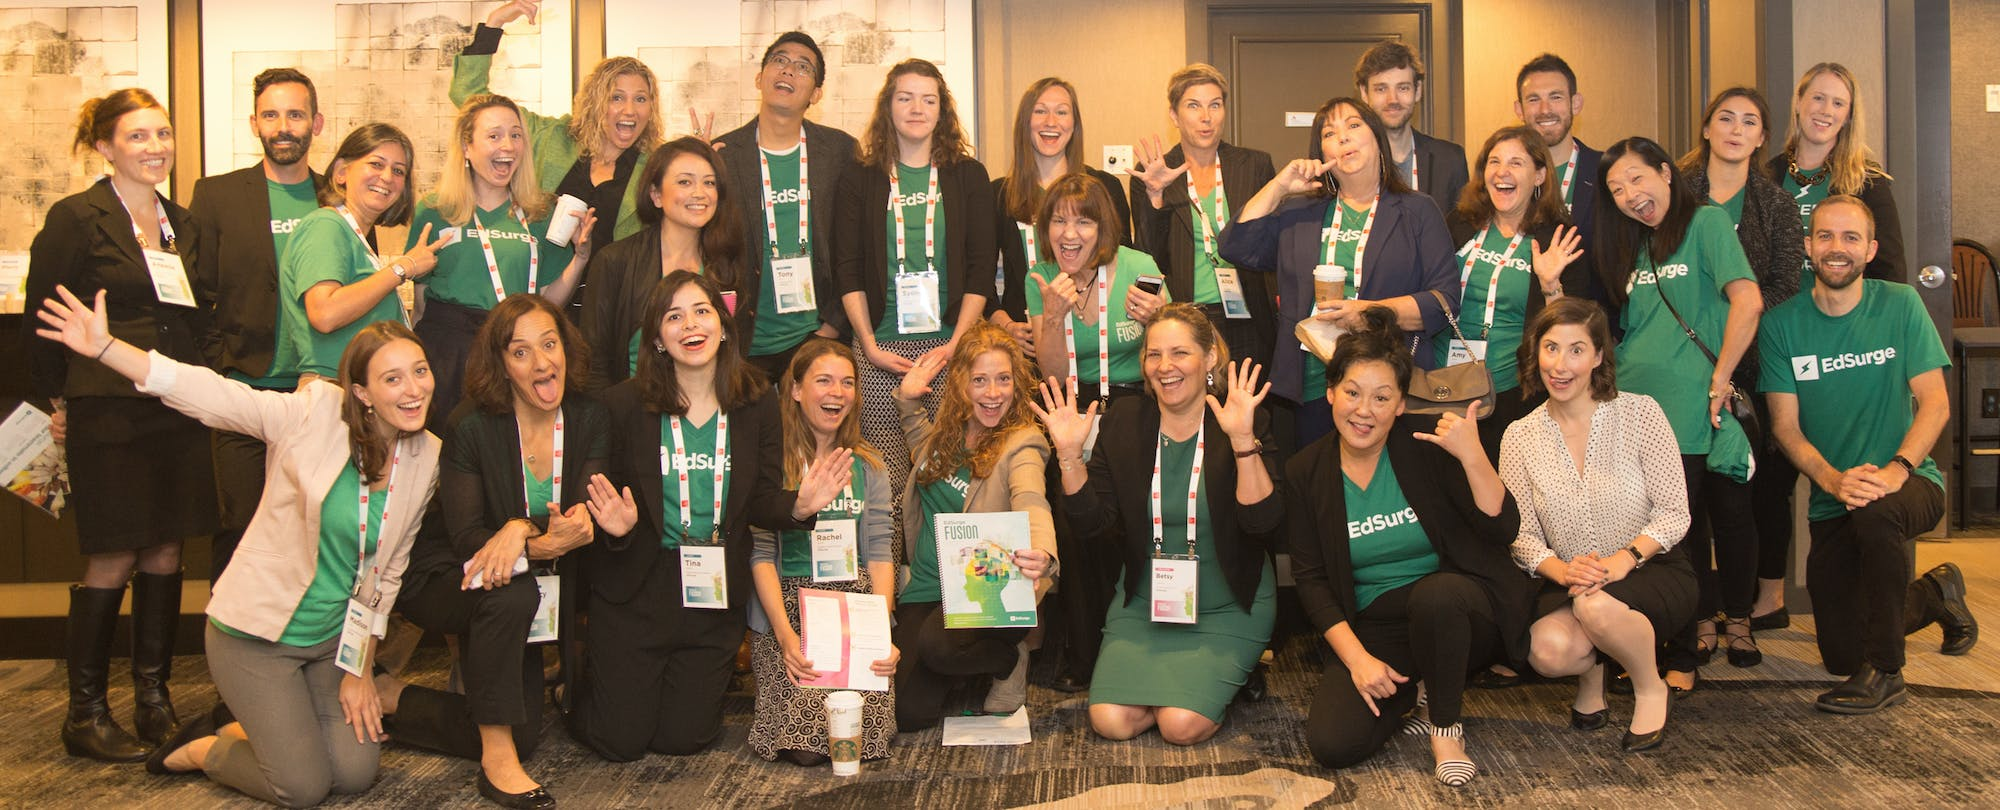 What You Can Expect from EdSurge in 2019